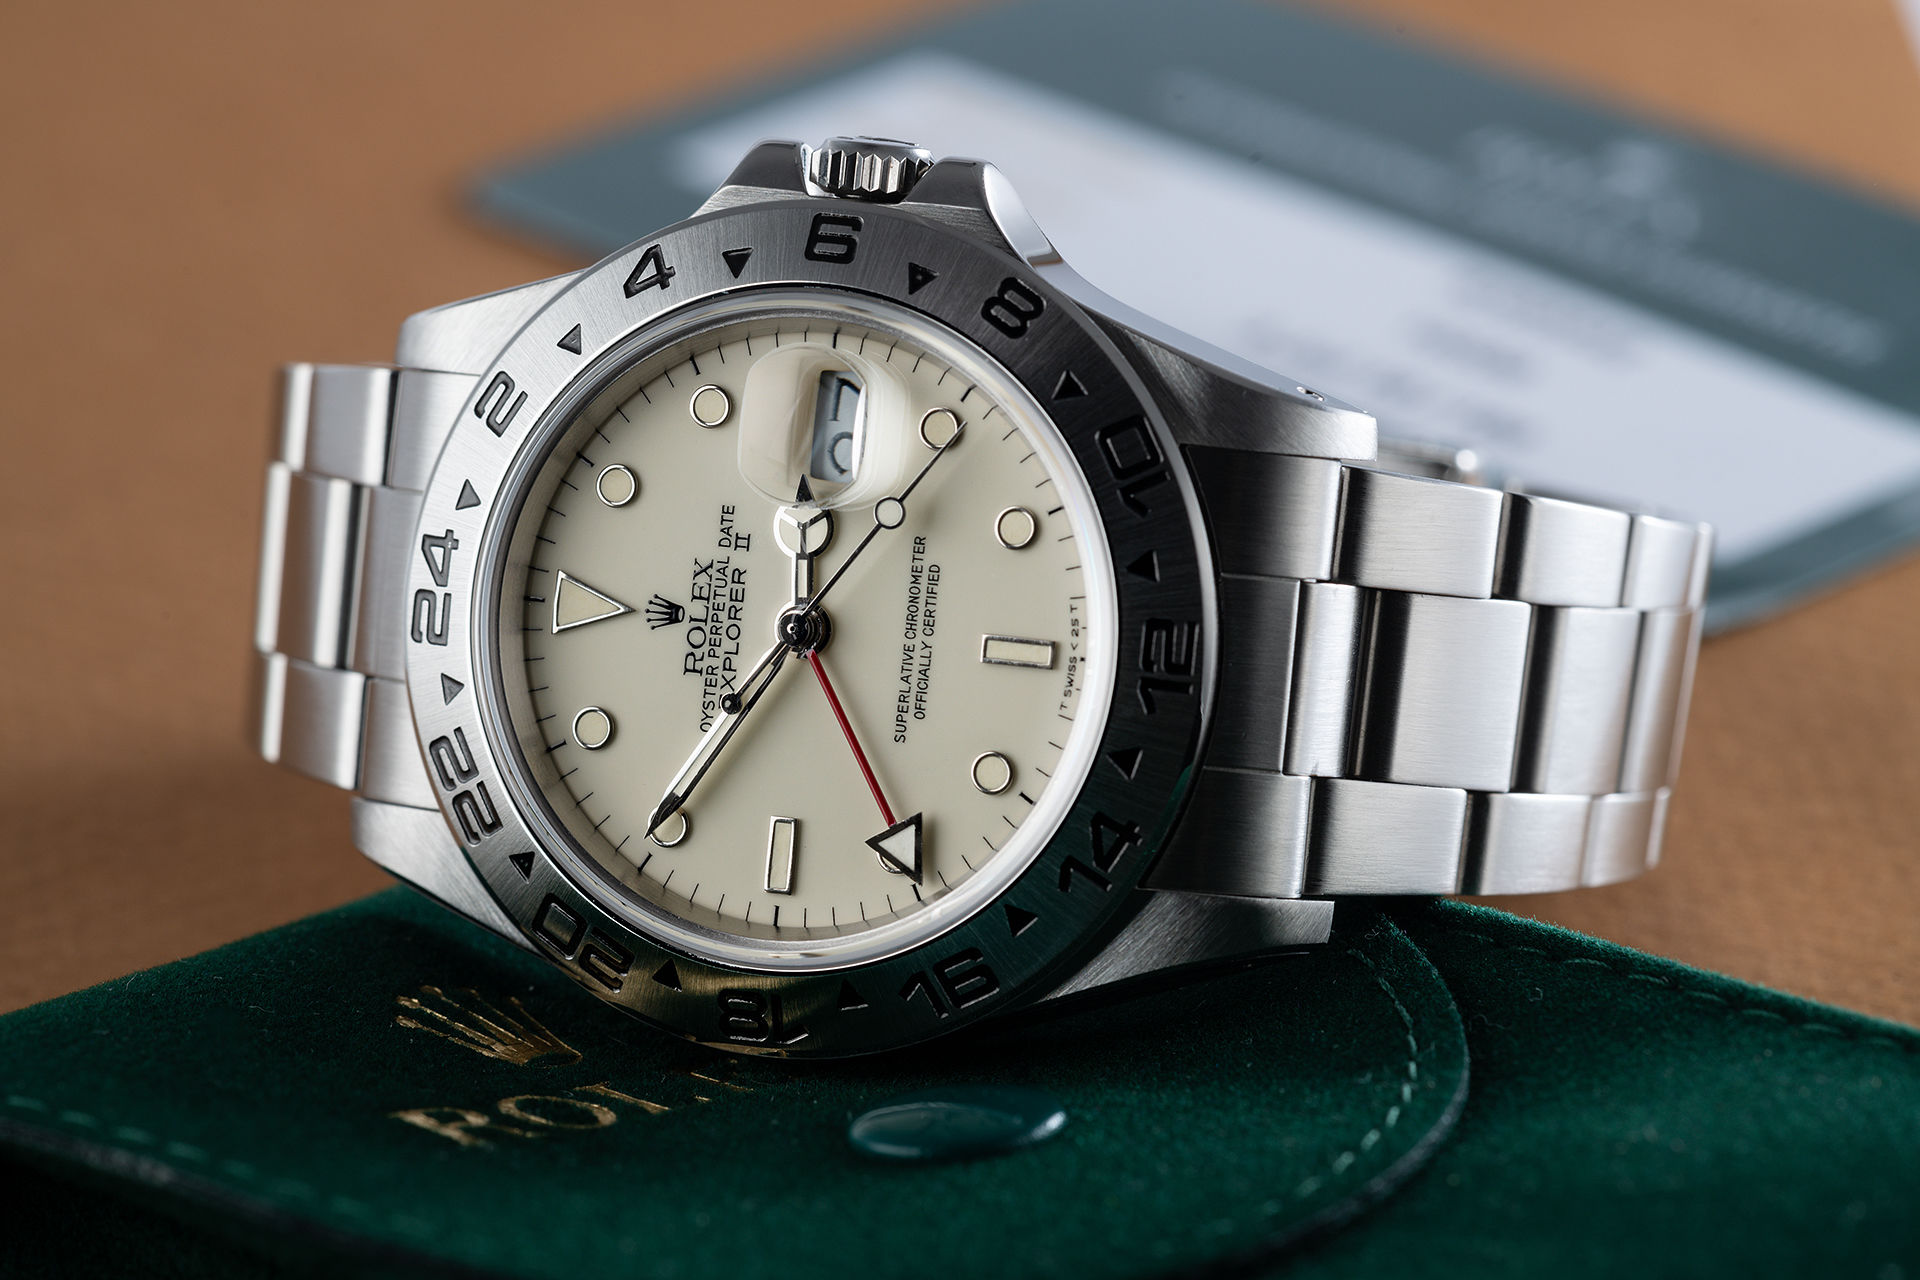 ref 16550 | Rare 'Non Rail' Transitional Model | Rolex Explorer II